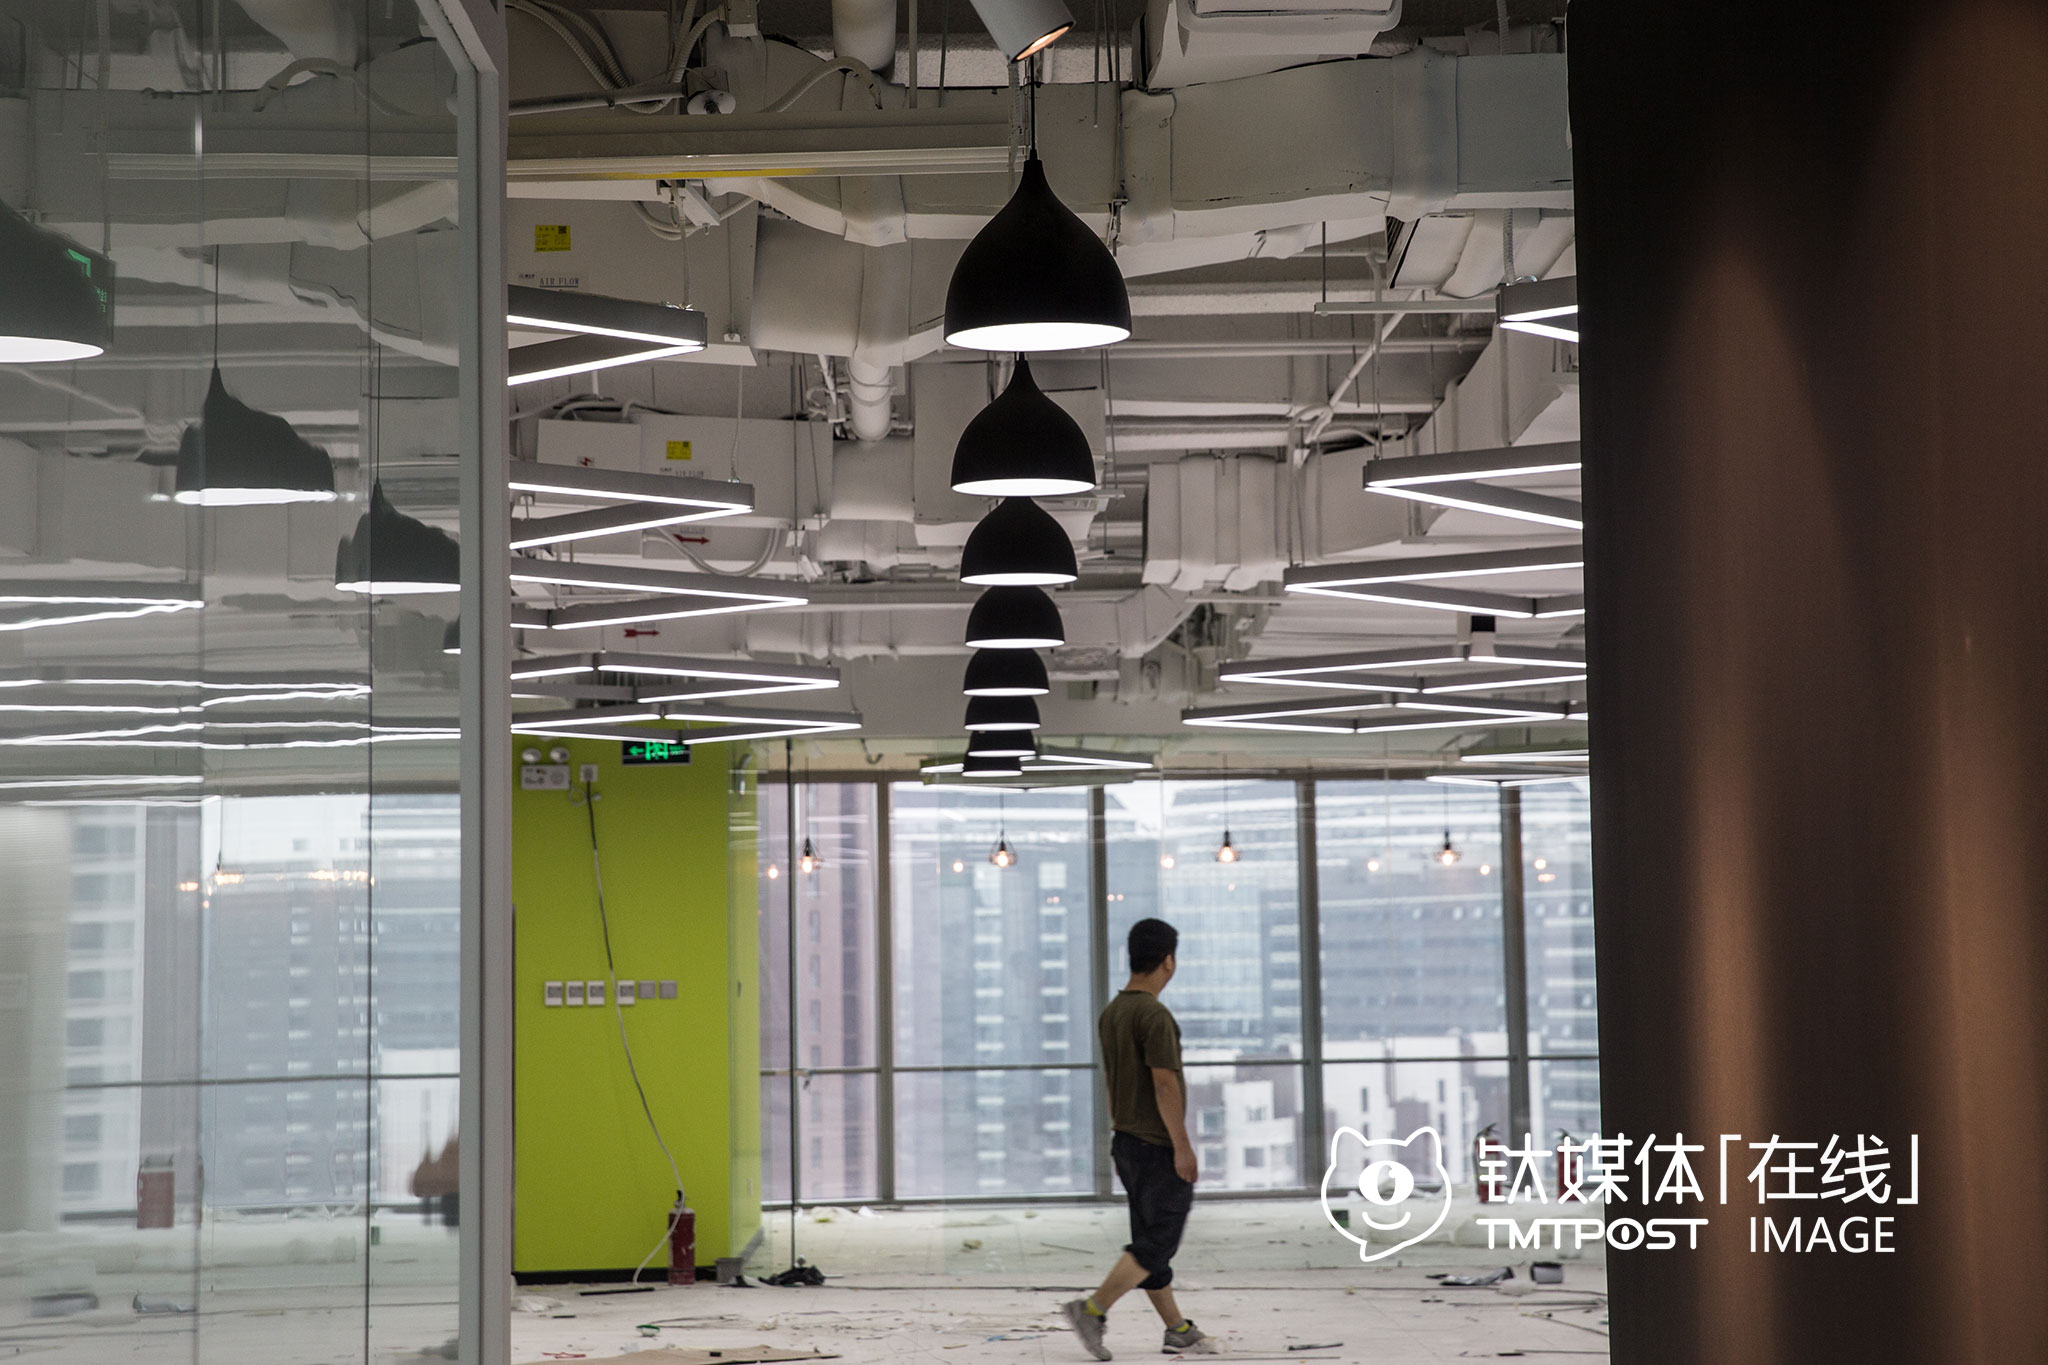 It was July, 15th, Beijing Posco Center. Workers were soon going to finish decorating the office of internet celebrity nurturing platform Internet Star Dream Maker. The office, covering over 1,000 square meters, will enable the company to mass-nurture new internet celebrities, from finding to training and promoting them.